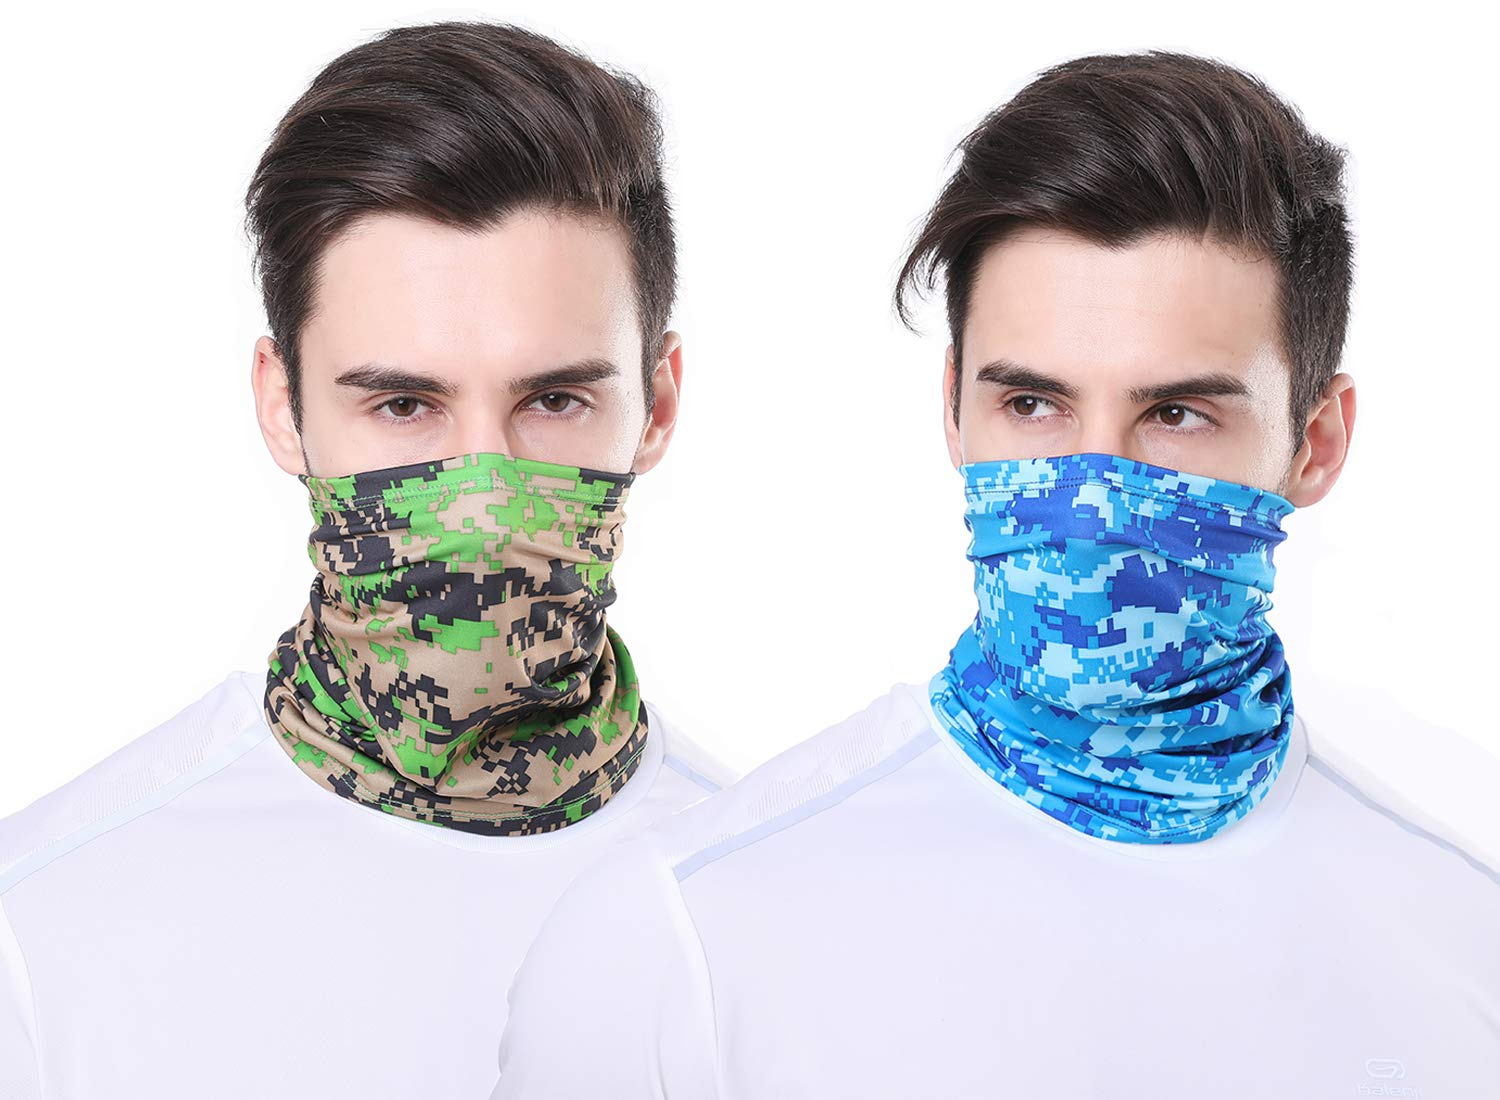 CHICONN 2Pack Ice Cooling Blue Army Green Camouflage Fishing Ski Face Mask Rave Camo Neck Scarf Bandanas for Dust, Sun block,Parade,Outdoors, Festivals,Cycling